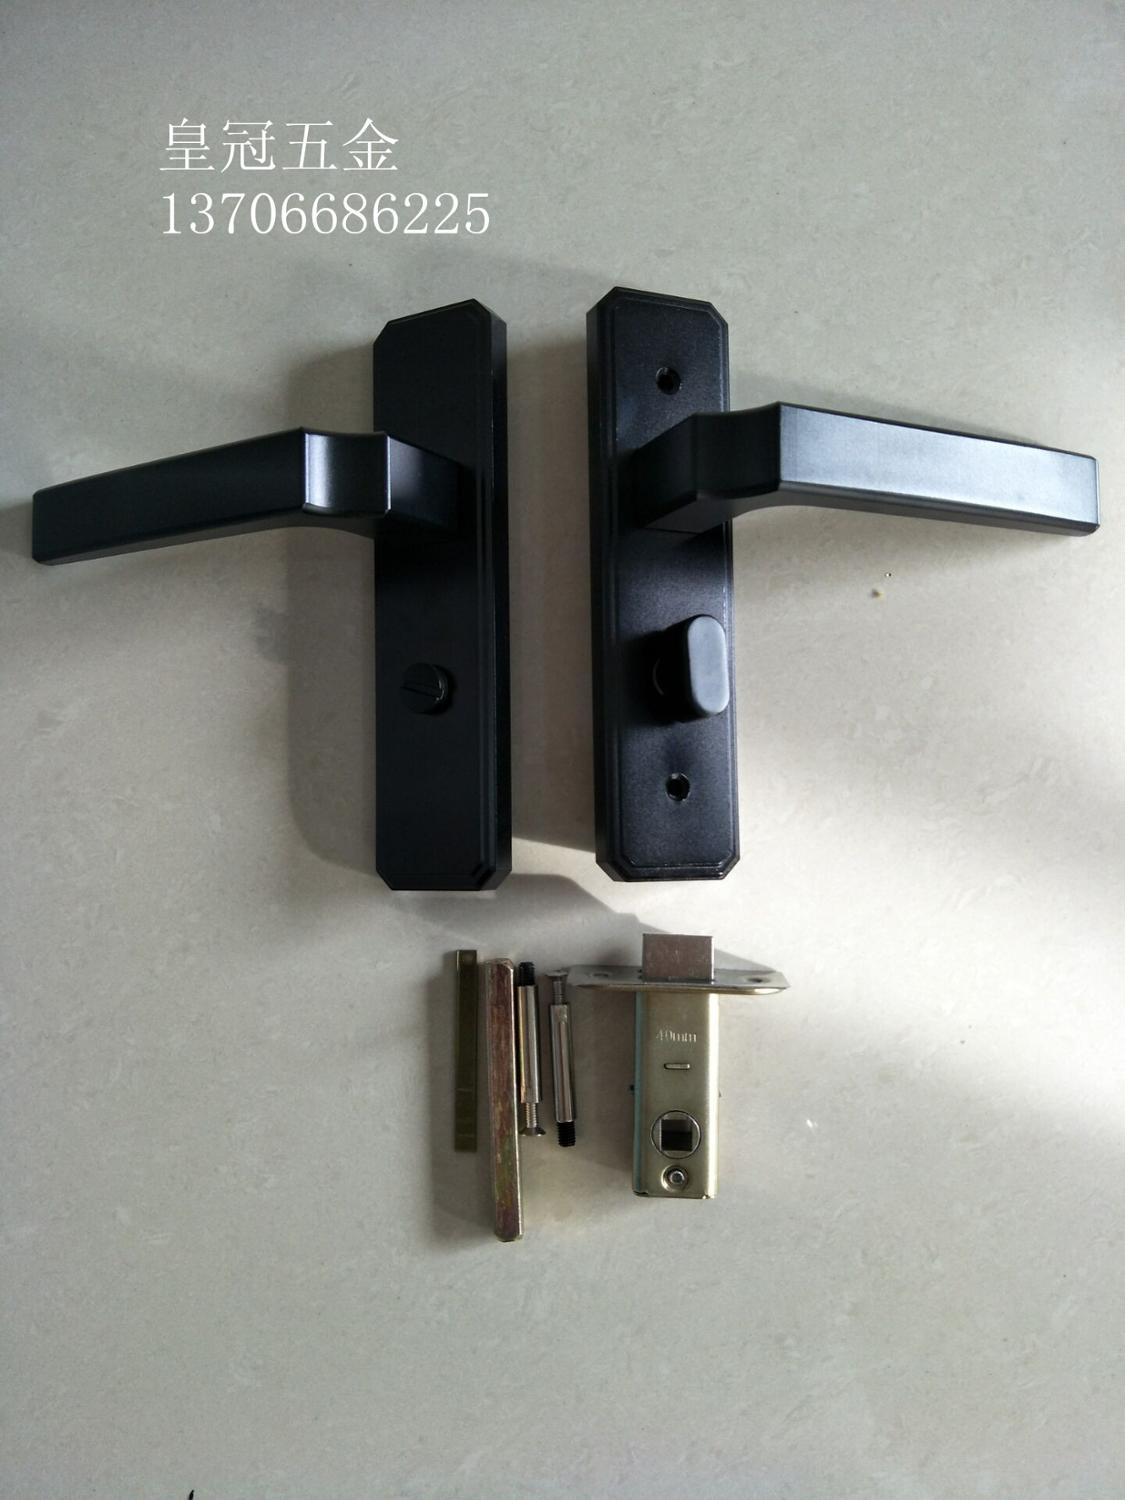 Bedroom Door Keypad Lock Indoor Bedroom Lock Handle Bathroom Door Lock Keyless